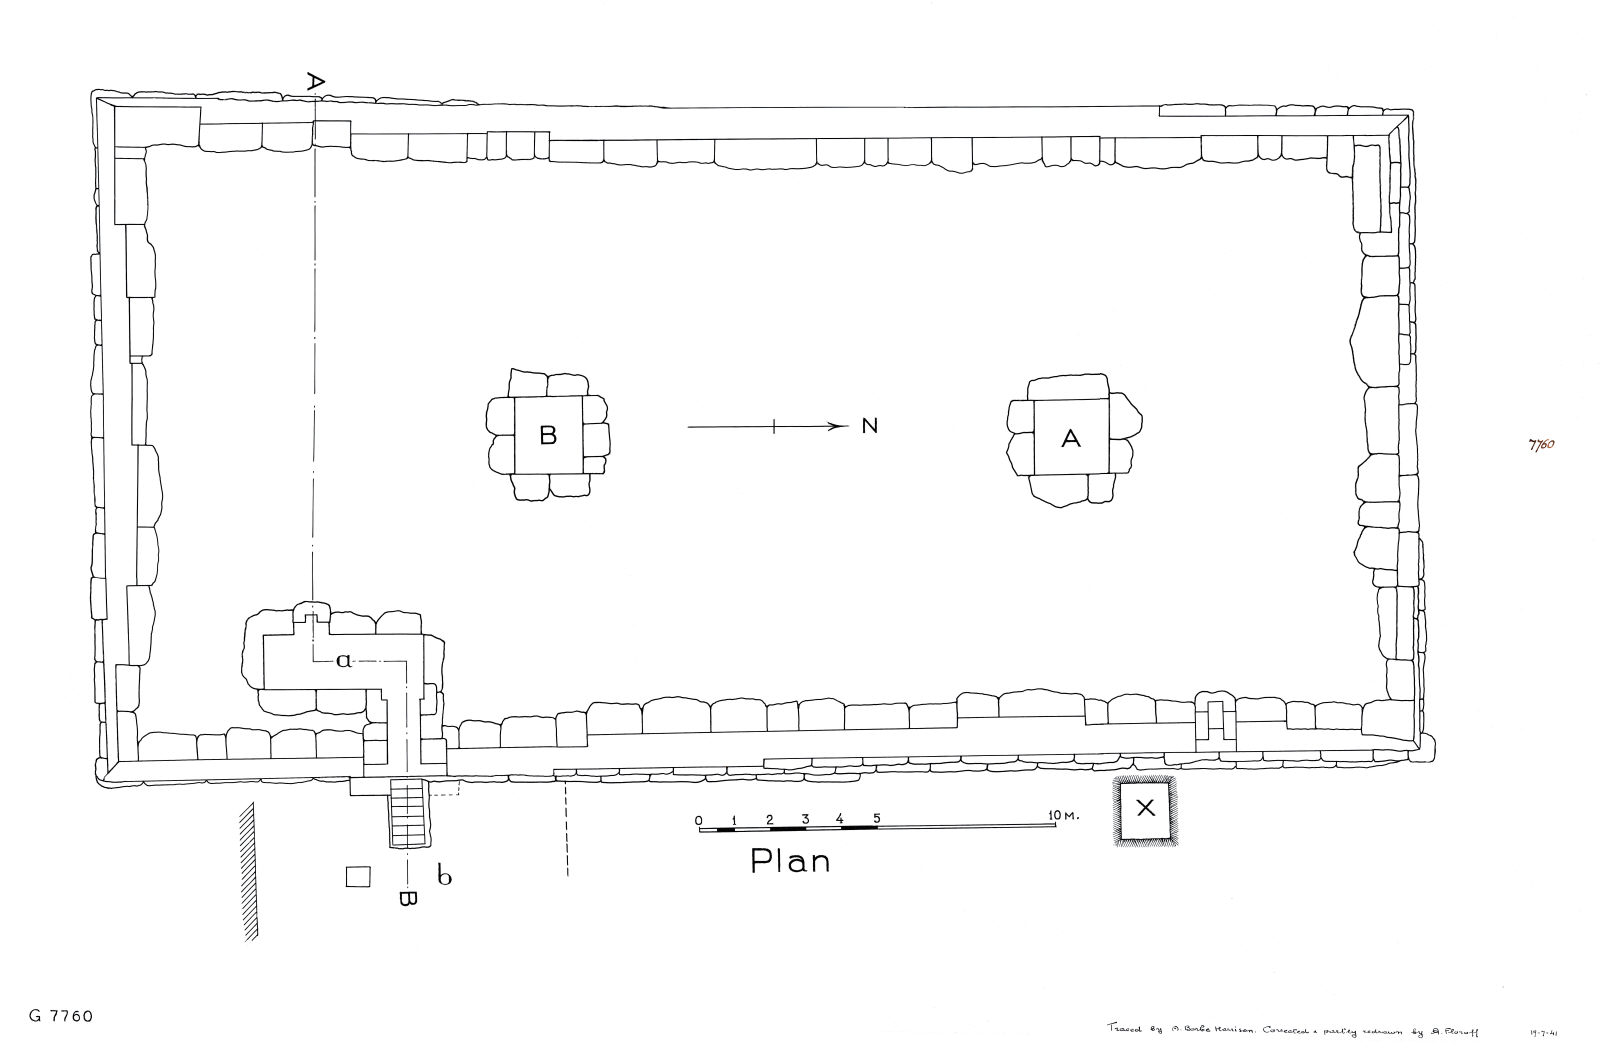 Maps and plans: G 7760, Plan